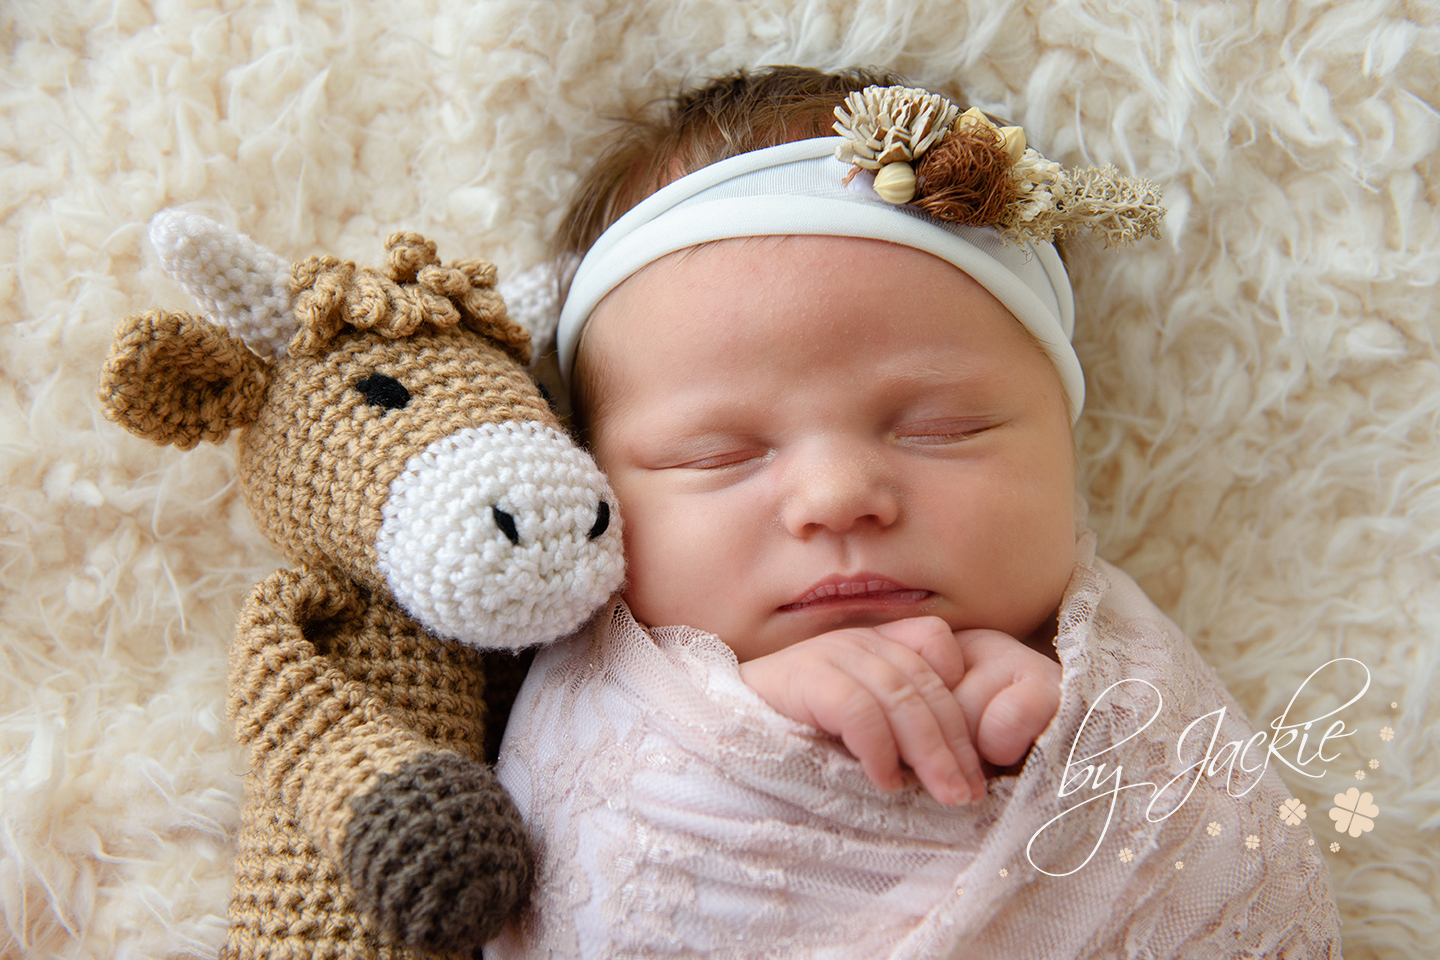 Baby girl cuddled up with her keepsake hand made cow from Babies By Jackie in Yorkshire, UK